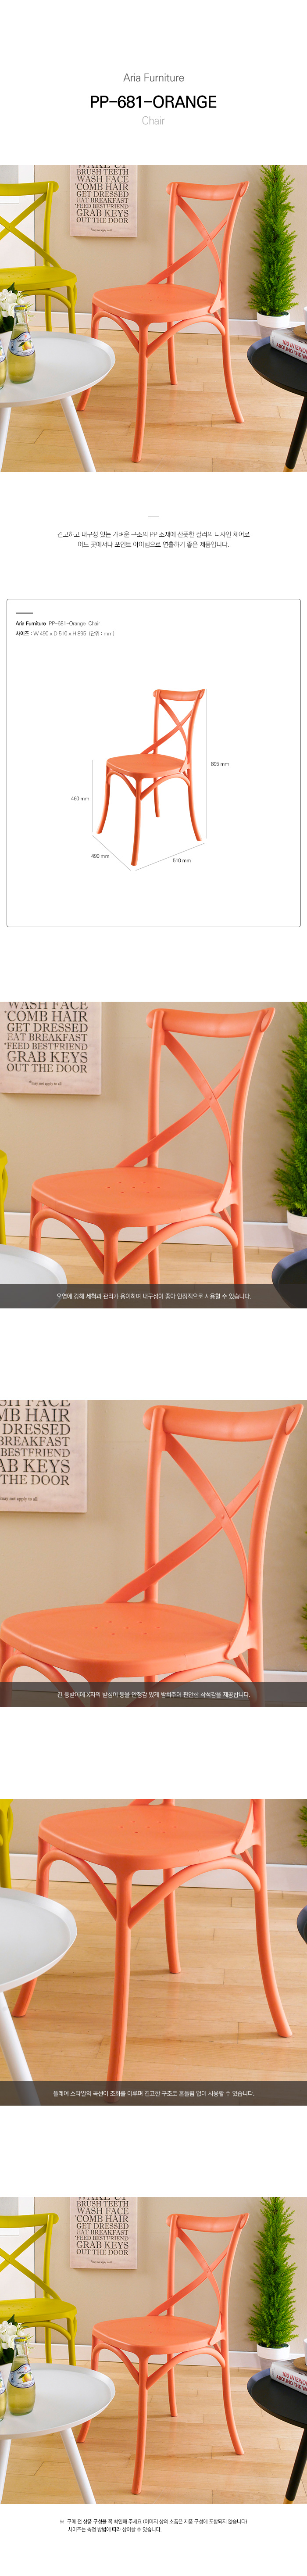 5_12_PP-681-Orange-chair.jpg